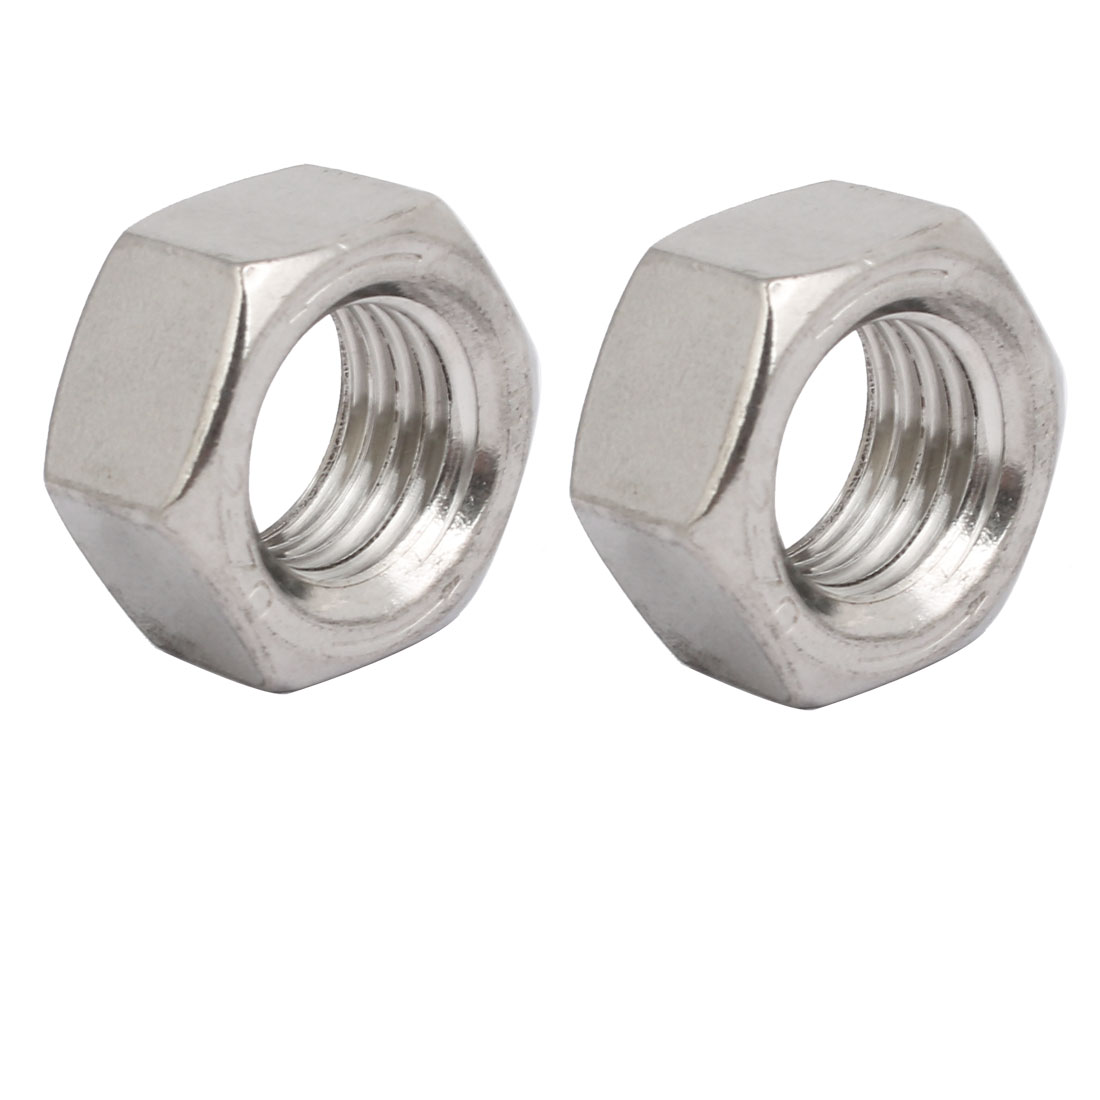 2pcs M20 x 2.5mm Pitch Metric Thread 304 Stainless Steel Left Hand Hex Nuts